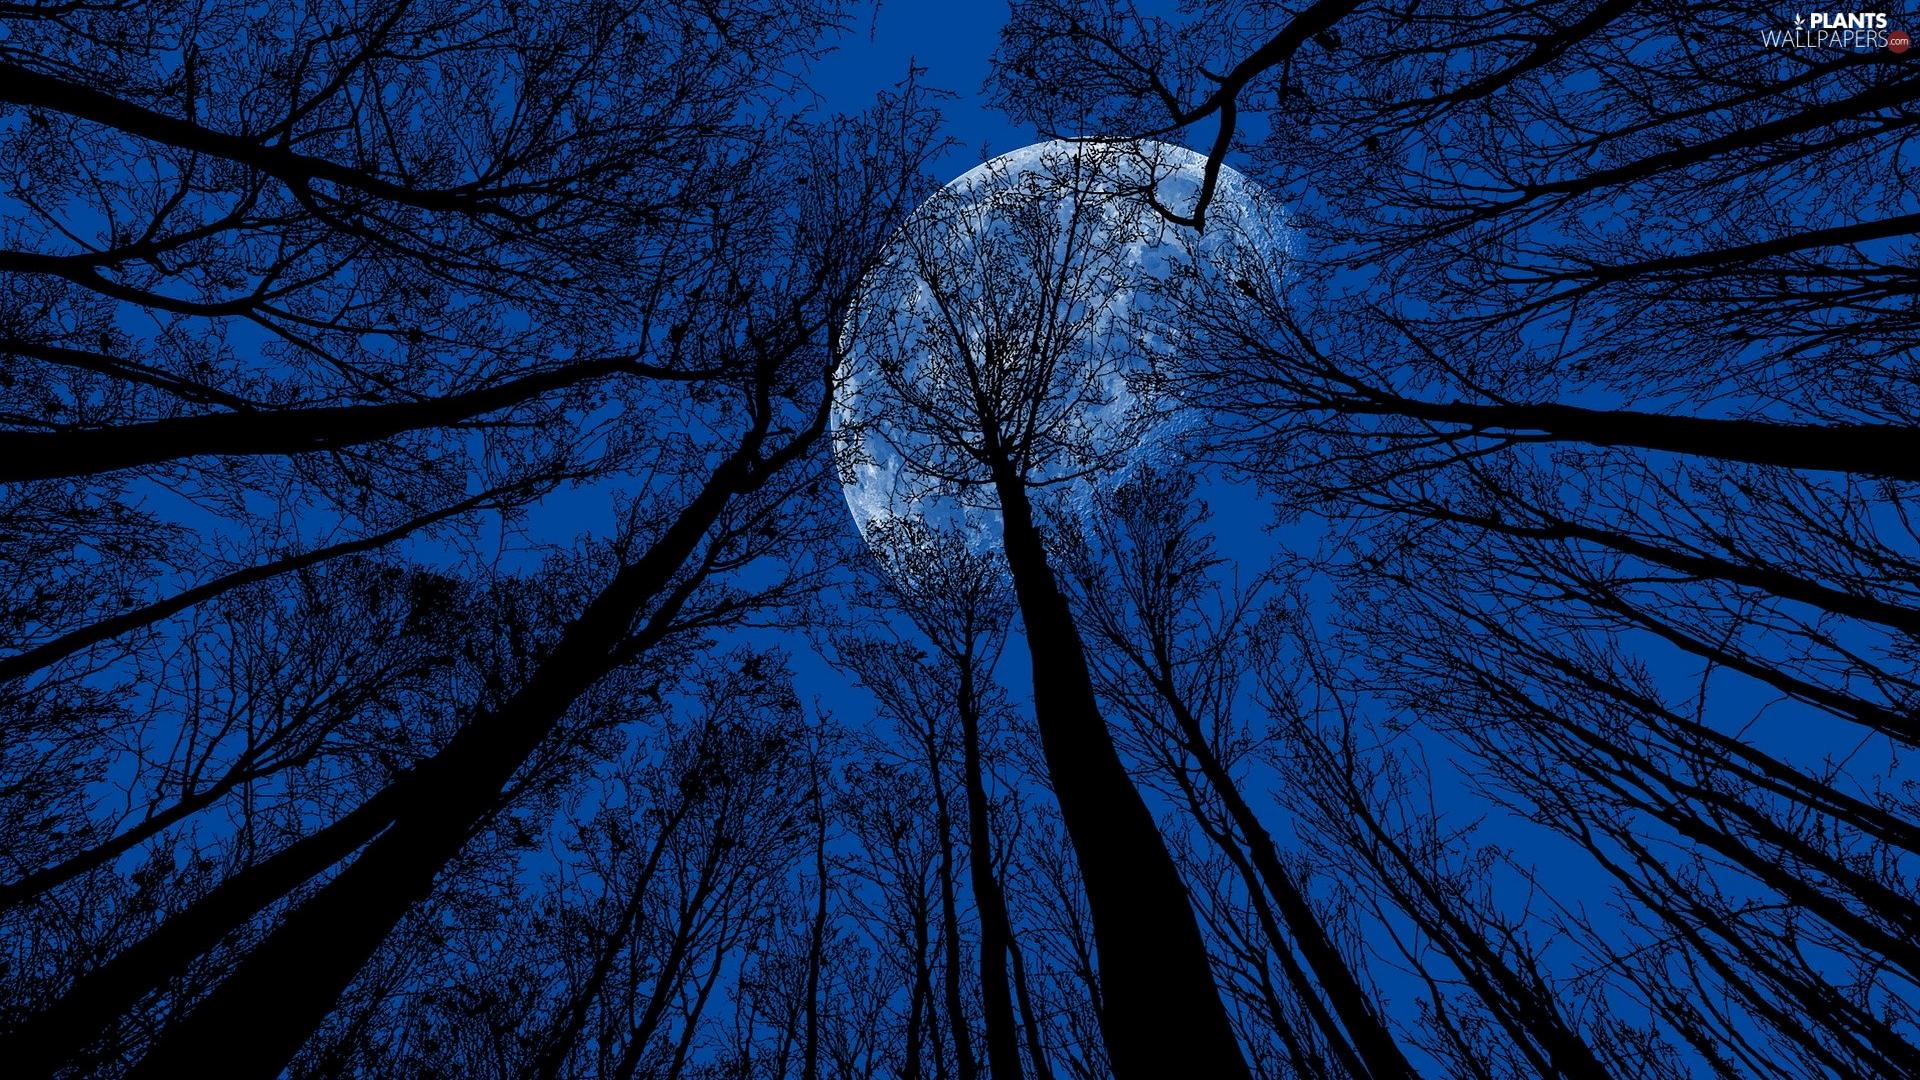 Night, moon, trees, viewes, vertices